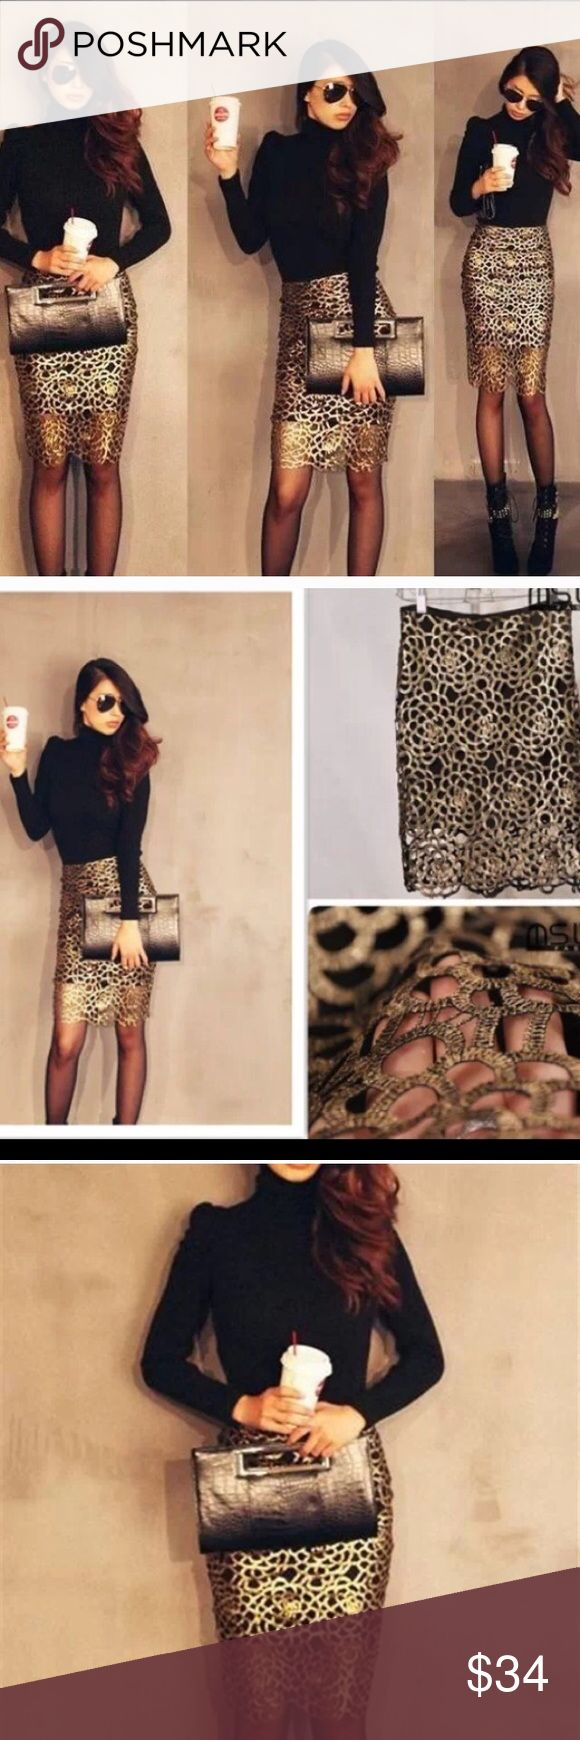 Cut Out Floral Black Gold Pencil Skirt New without tags Skirts Pencil